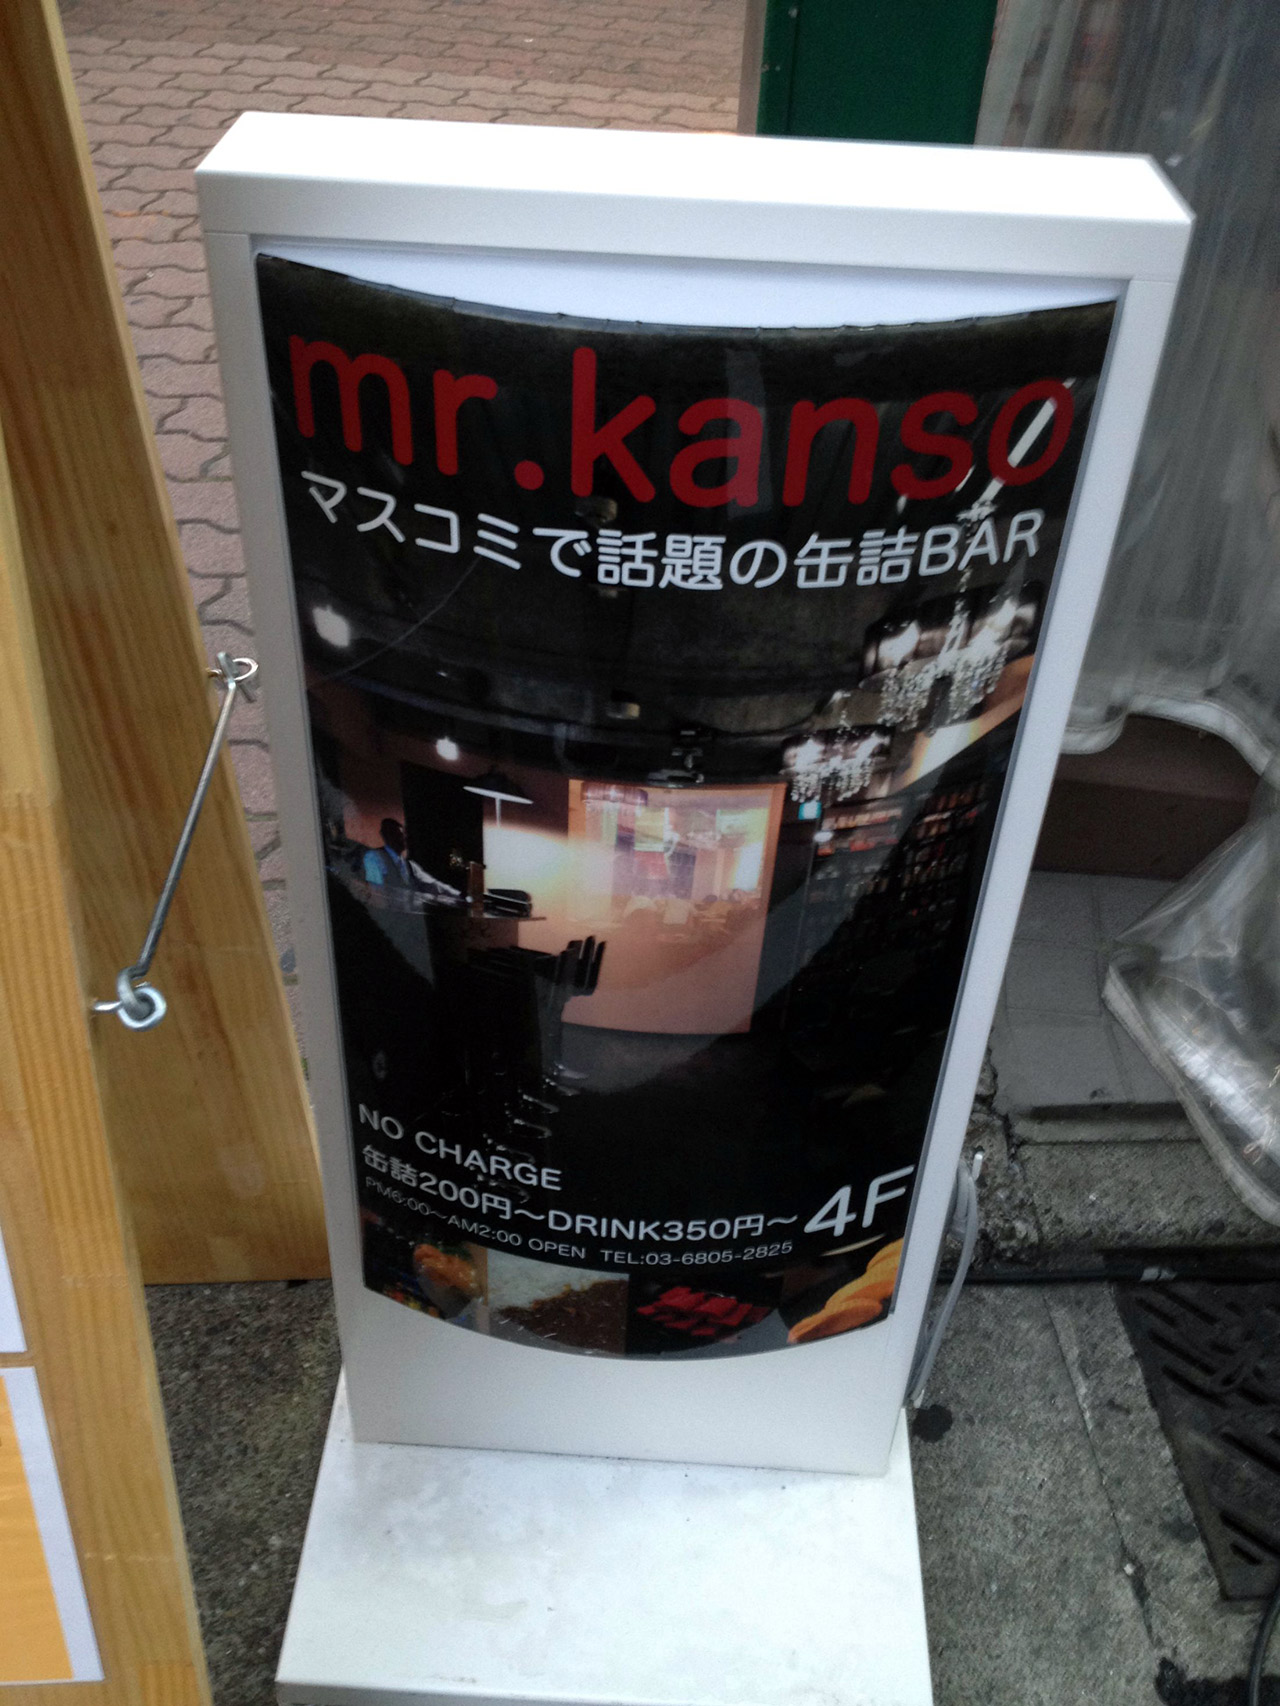 japanese food drink bar sign placard